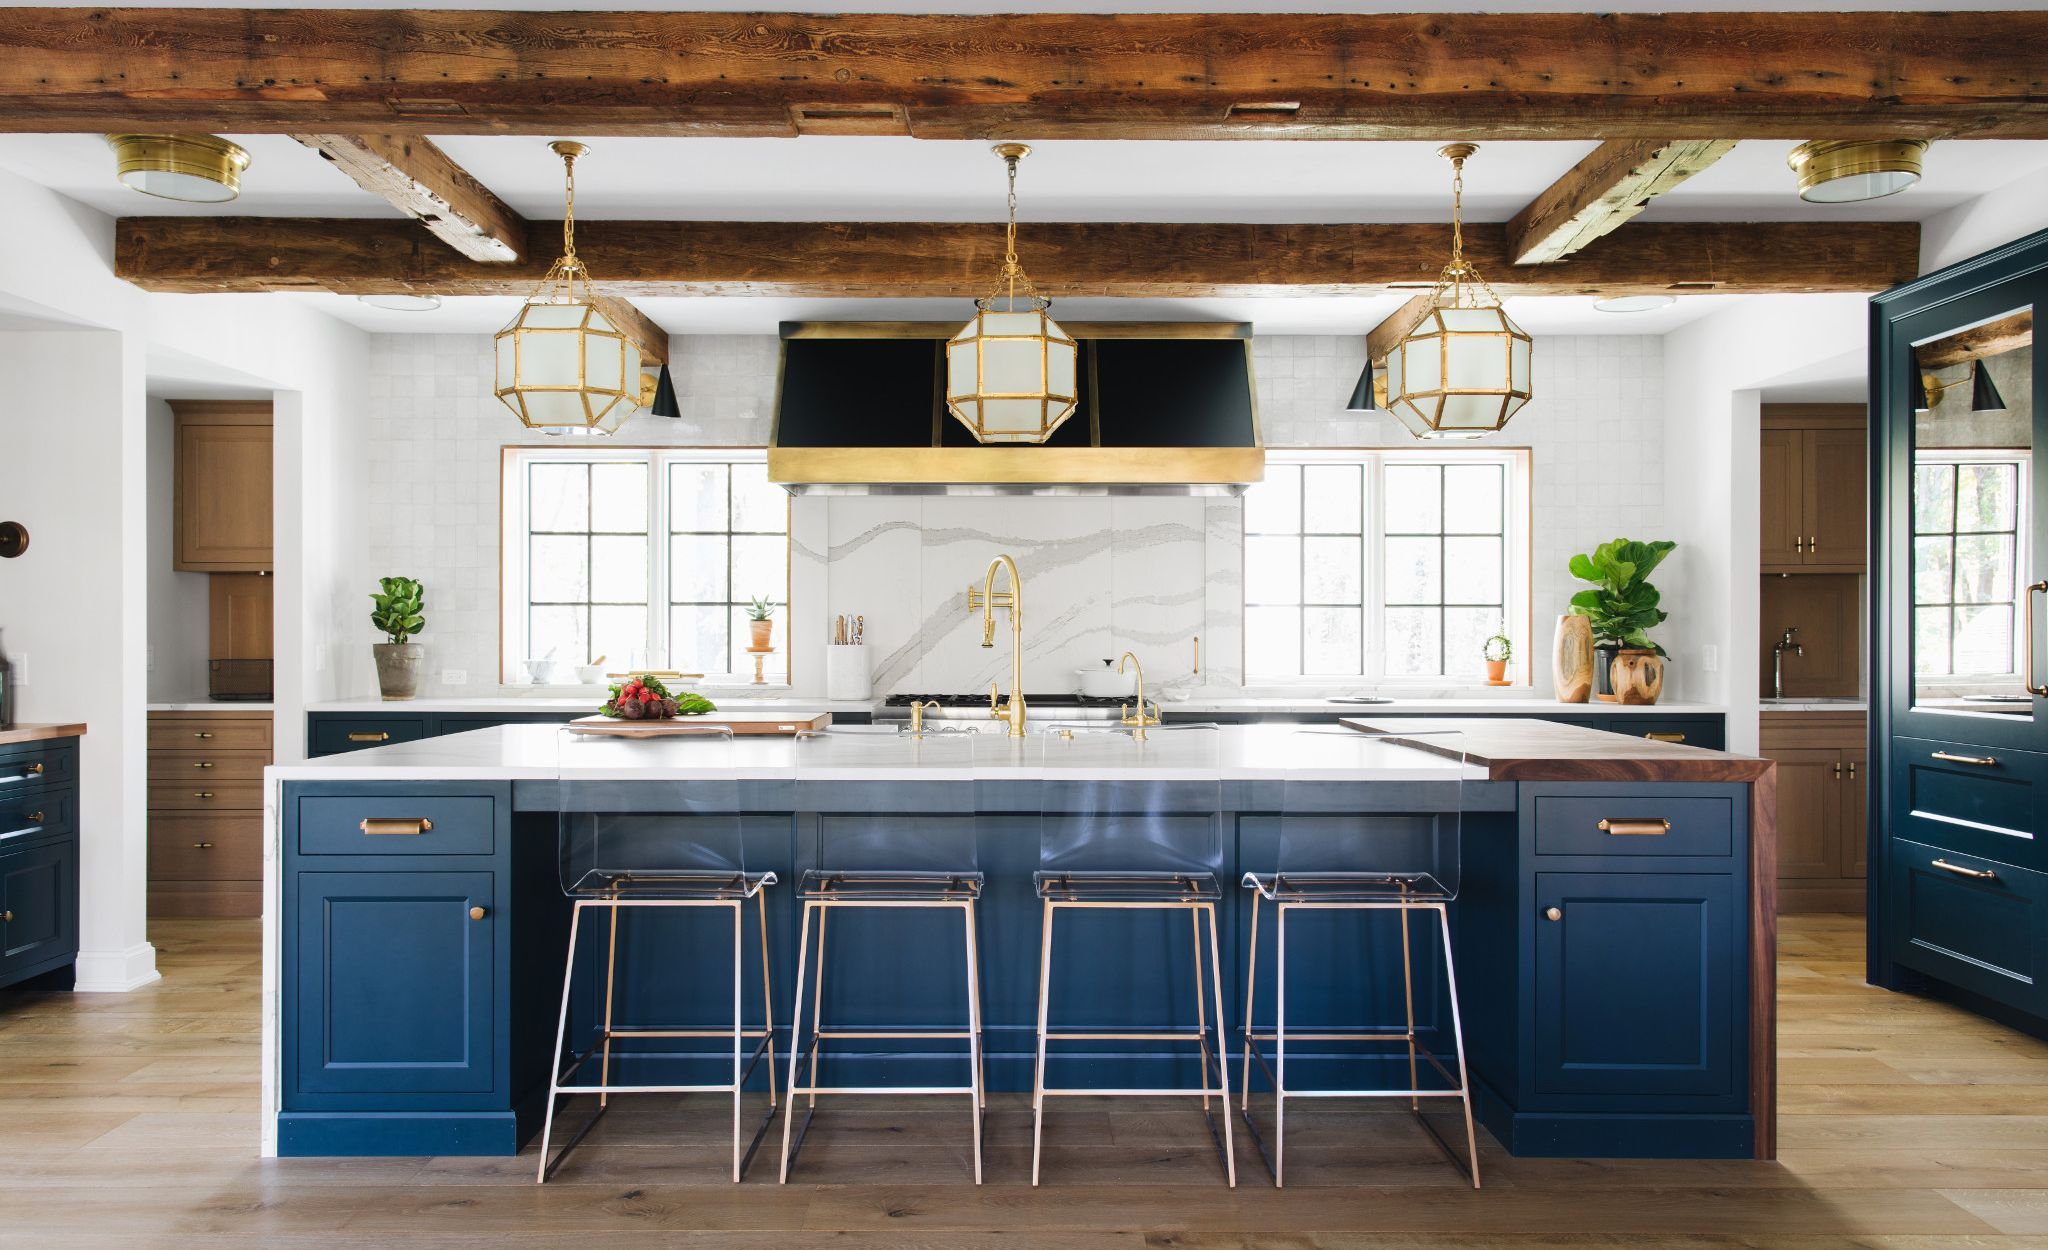 Contrasting colors and tones work well together in this kitchen featuring Brittanicca.